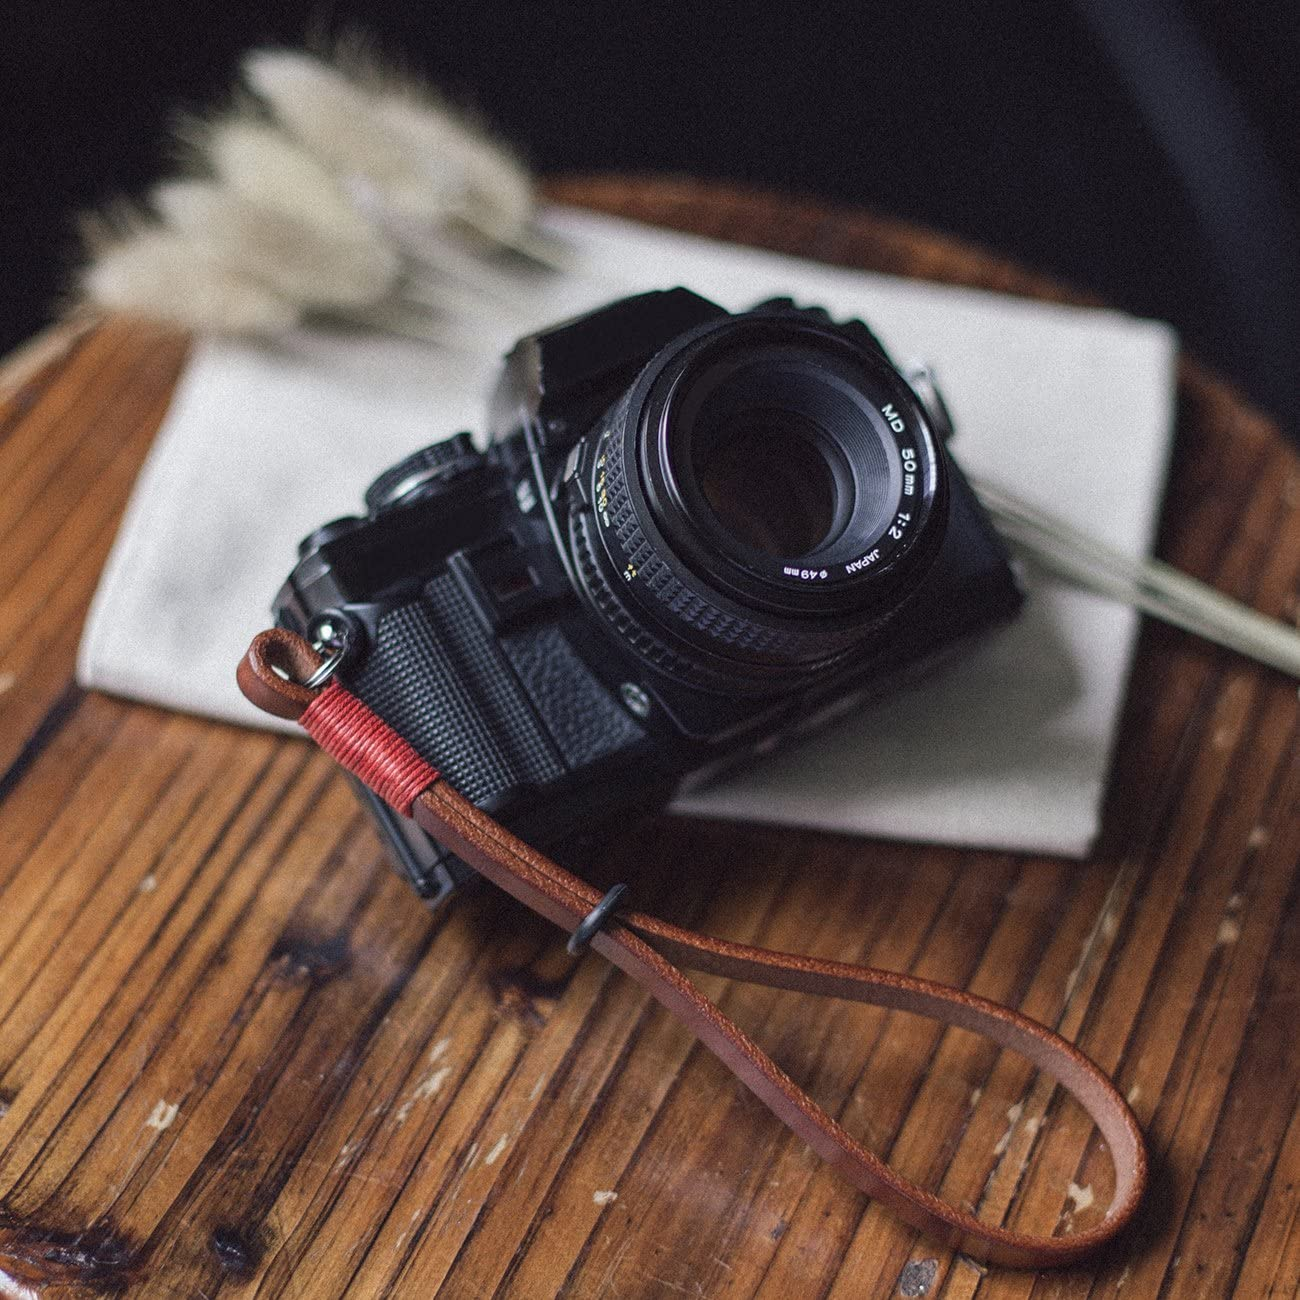 TARION Camera Wrist Strap Genuine Leather Camera Hand Strap Handmade Handcrafted Camera Strap Wriststrap Handstrap Retro Style for Compact SLR DSLR Mirrorless Cameras Coffee